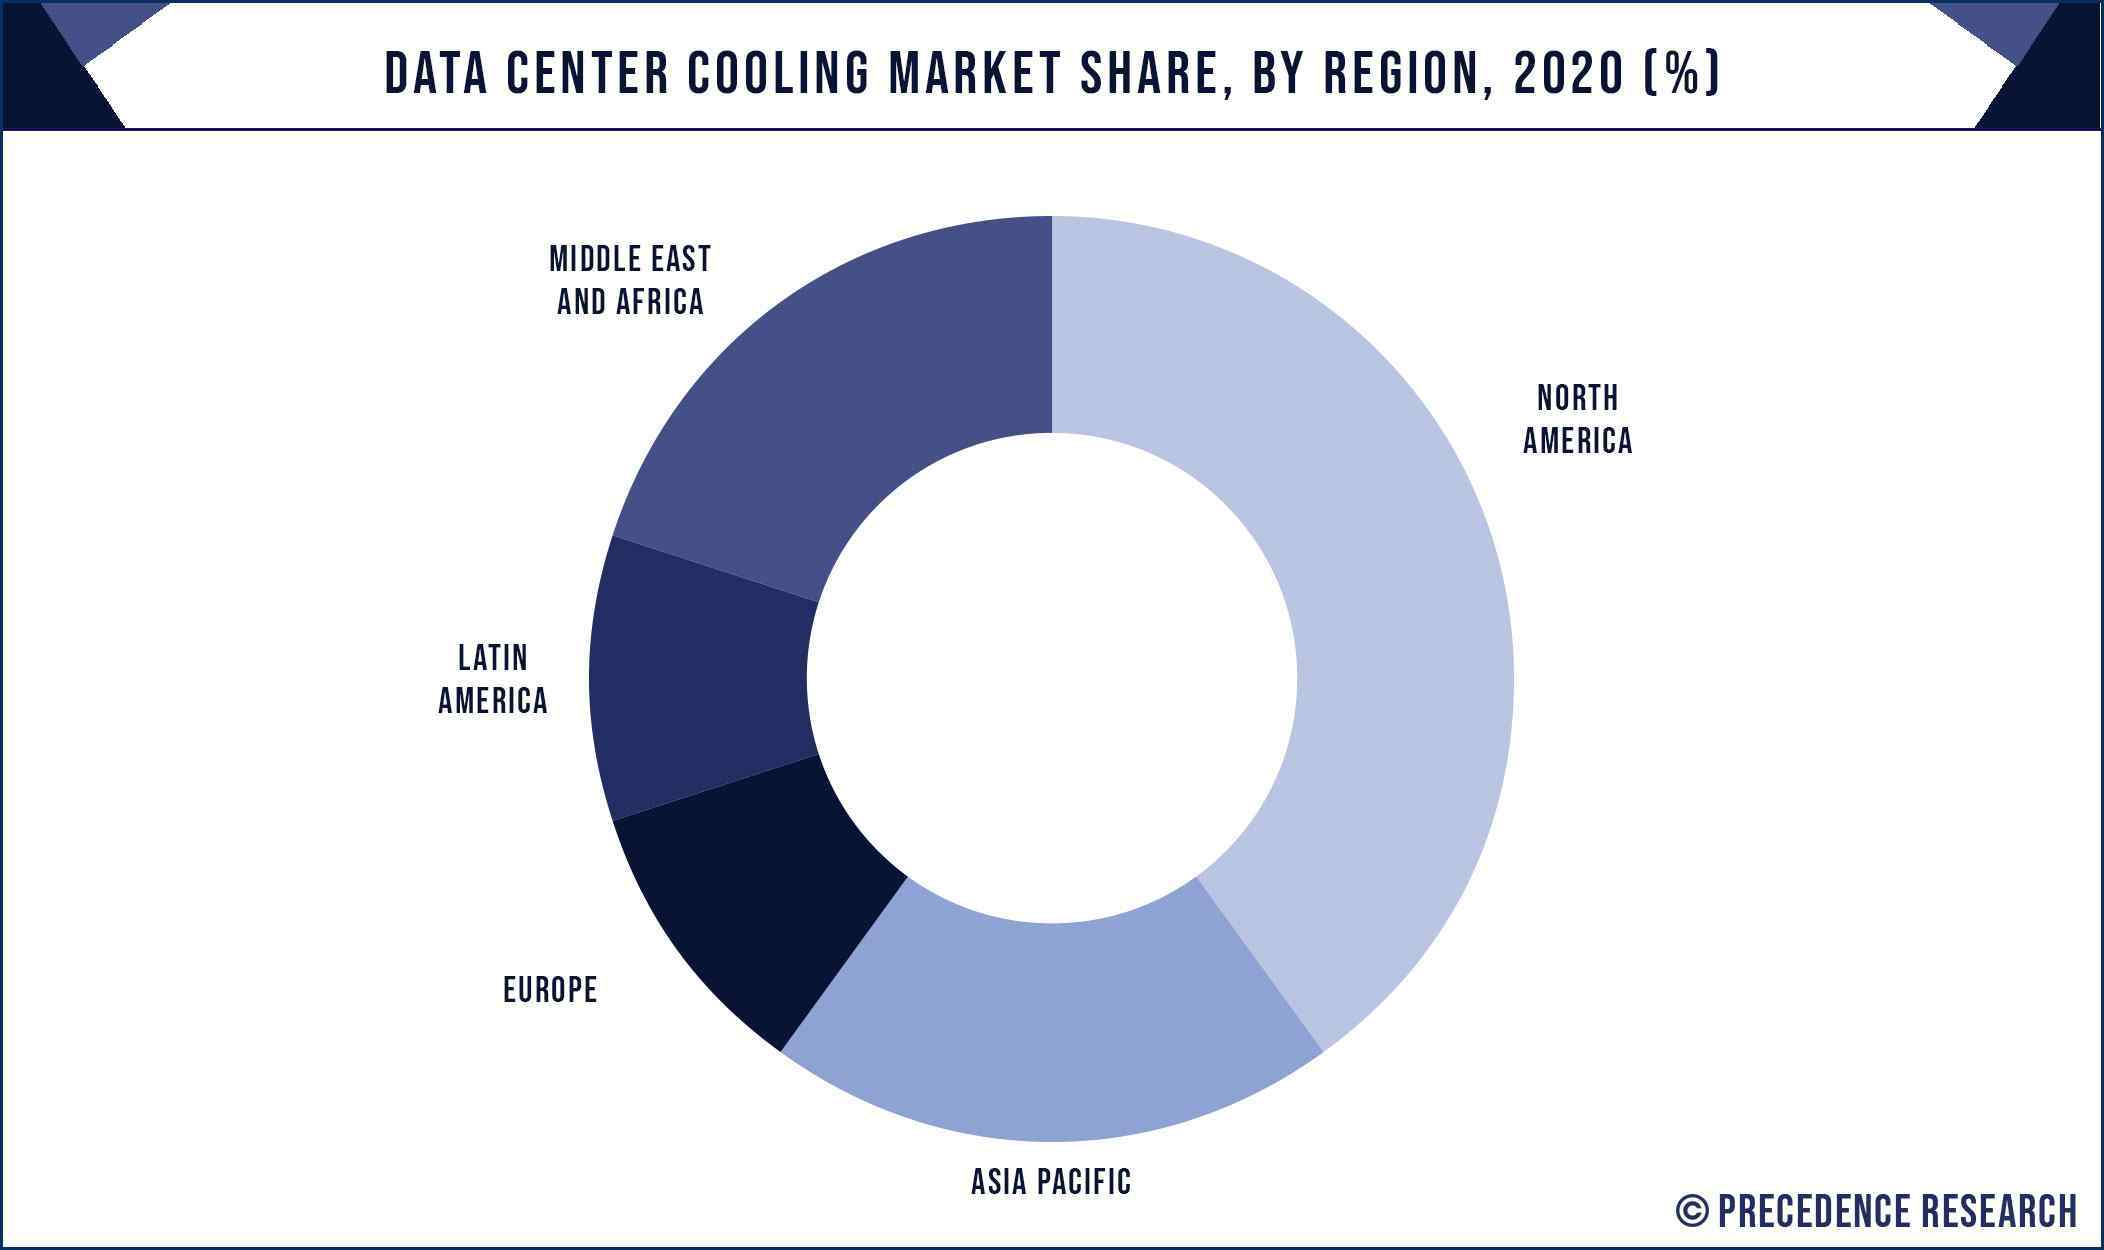 Data Center Cooling Market Share, By Region, 2020 (%)